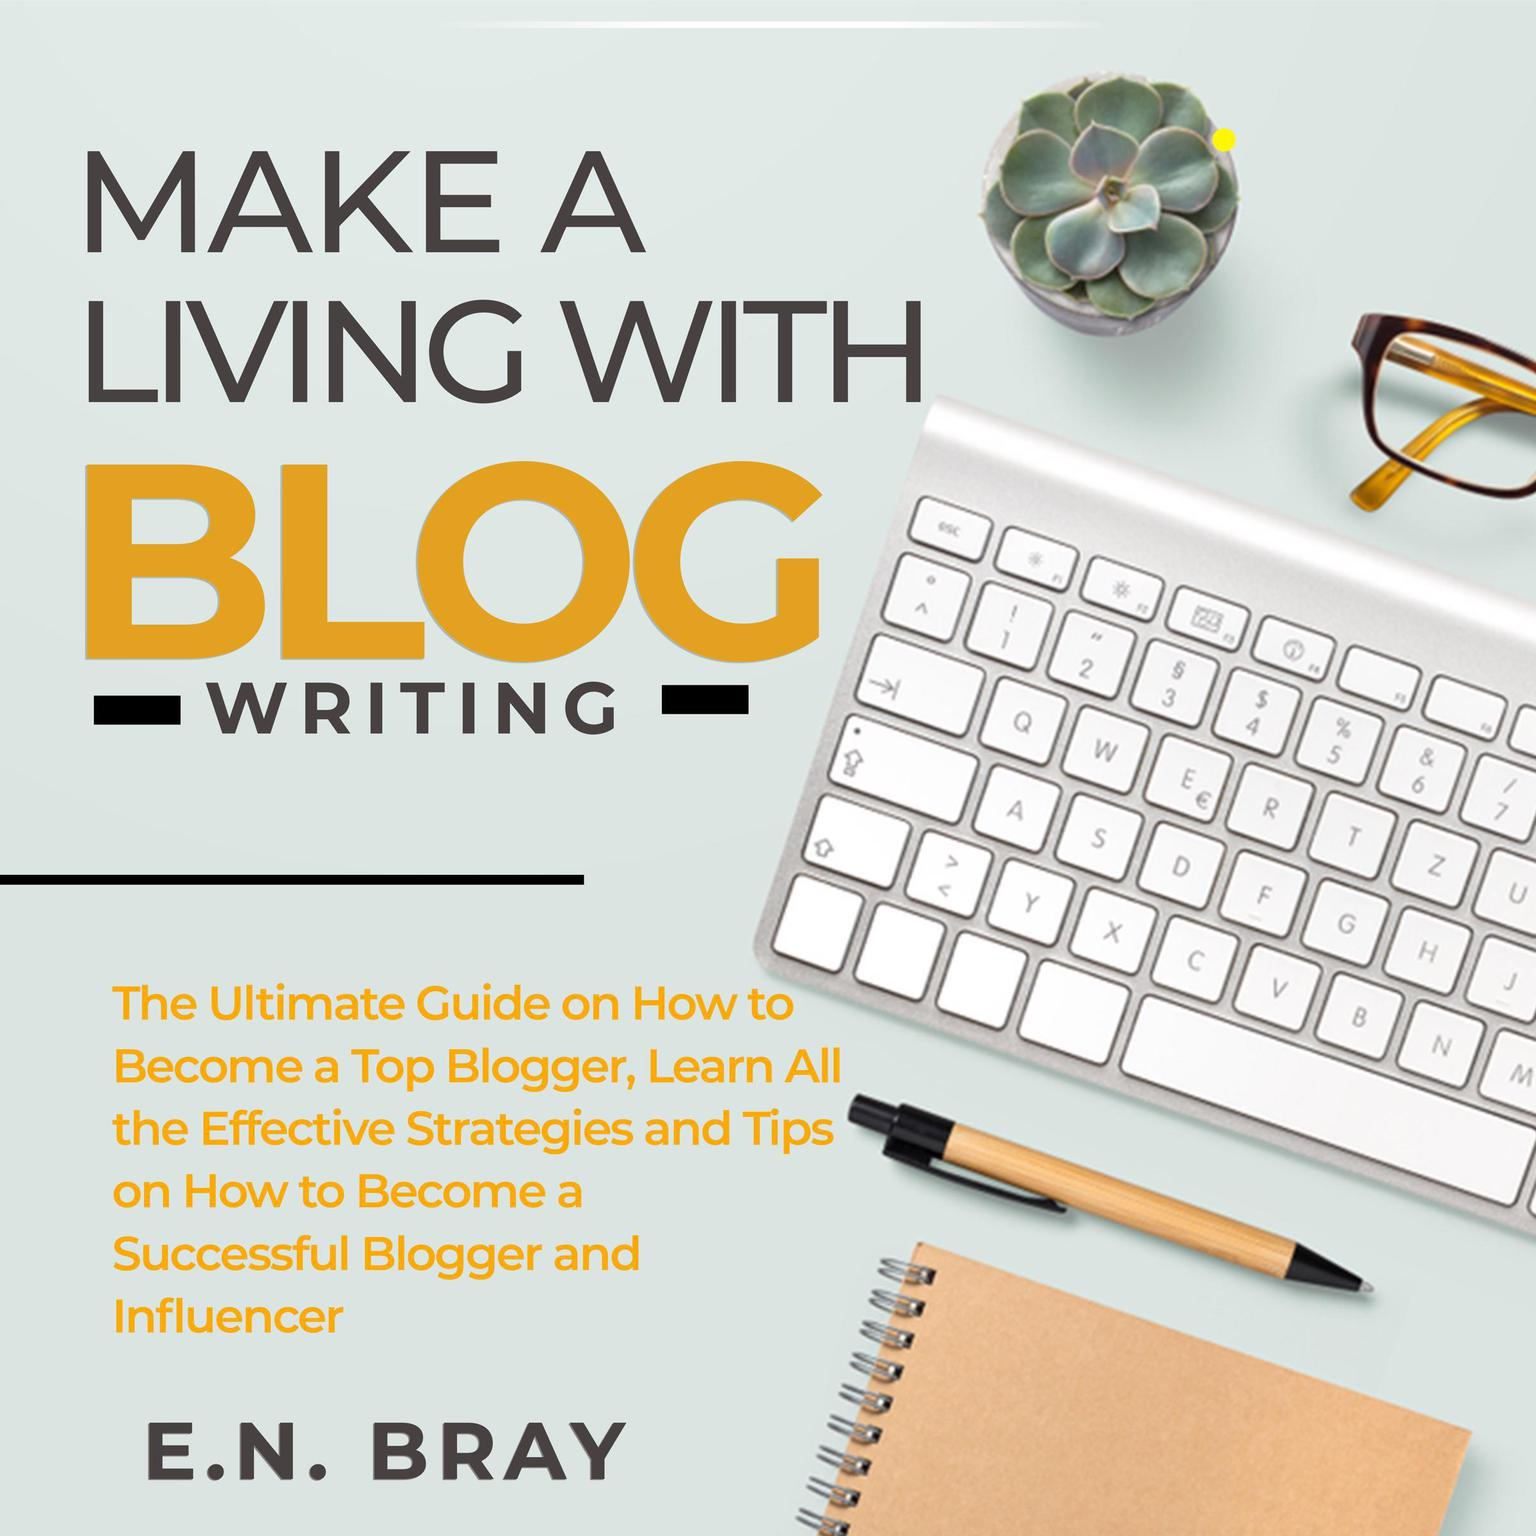 Make a Living With Blog Writing: The Ultimate Guide on How to Become a Top Blogger, Learn All the Effective Strategies and Tips on How to Become a Successful Blogger and Influencer Audiobook, by E.N. Bray